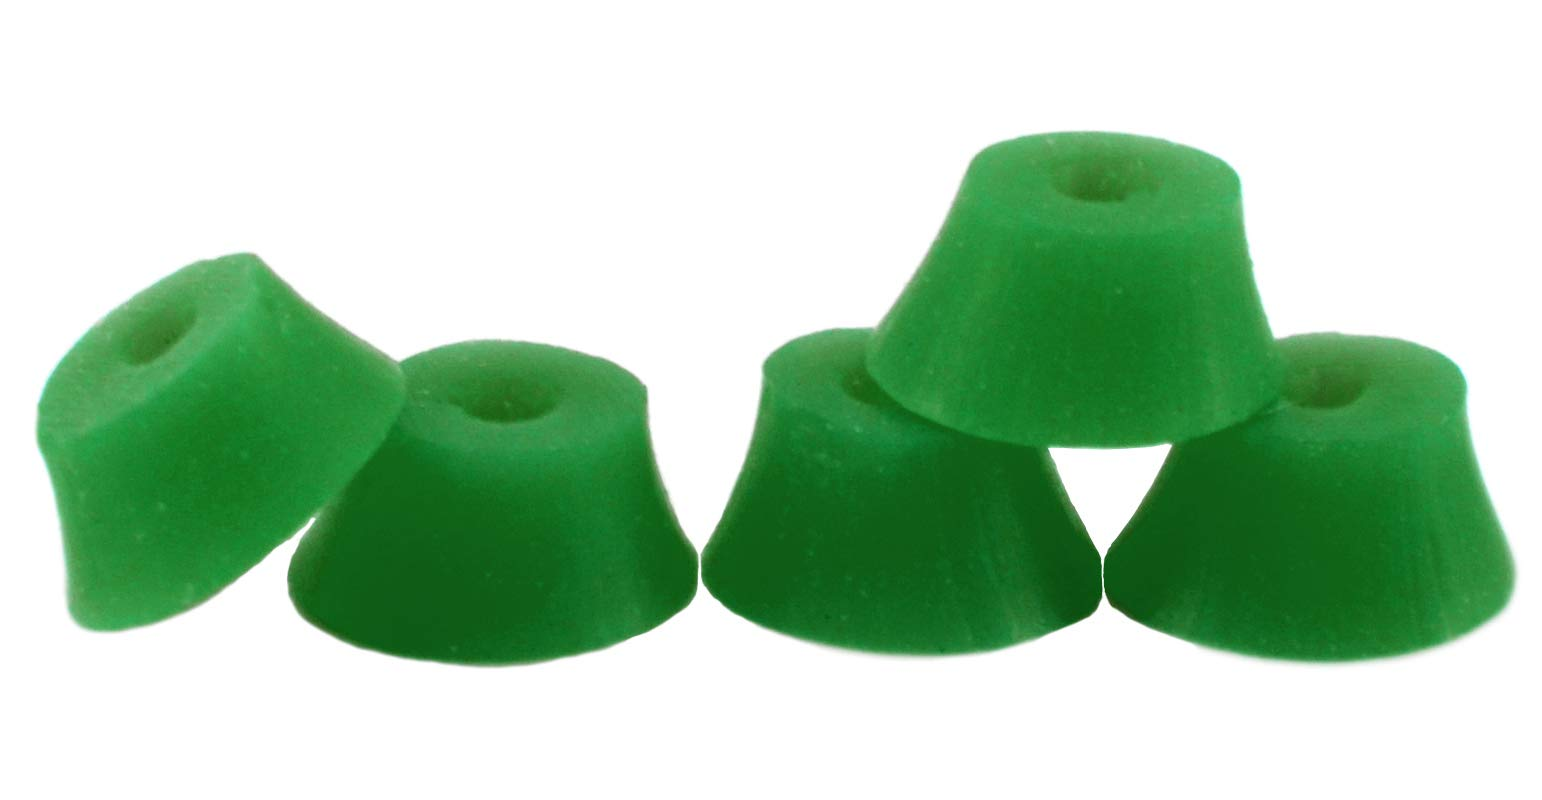 Teak Tuning Bubble Bushings, Professional Shaped Fingerboard Tuning, Dark Green, Pack of 5